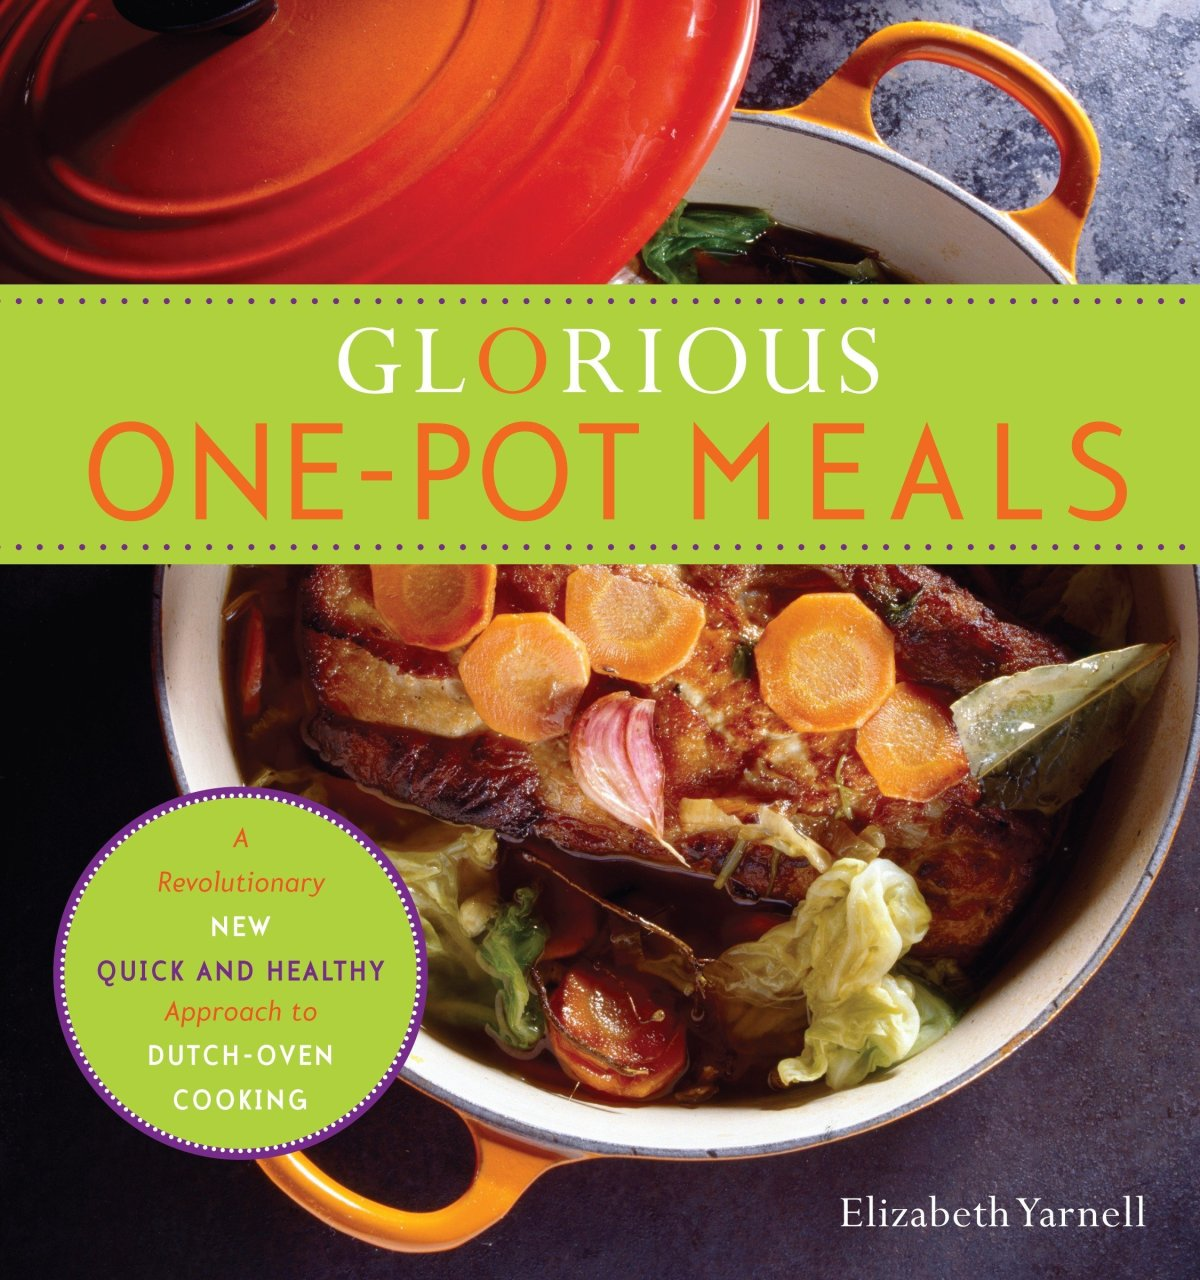 Glorious One-Pot Meals: A Revolutionary New Quick and Healthy Approach to Dutch-Oven Cooking: A Cookbook 1